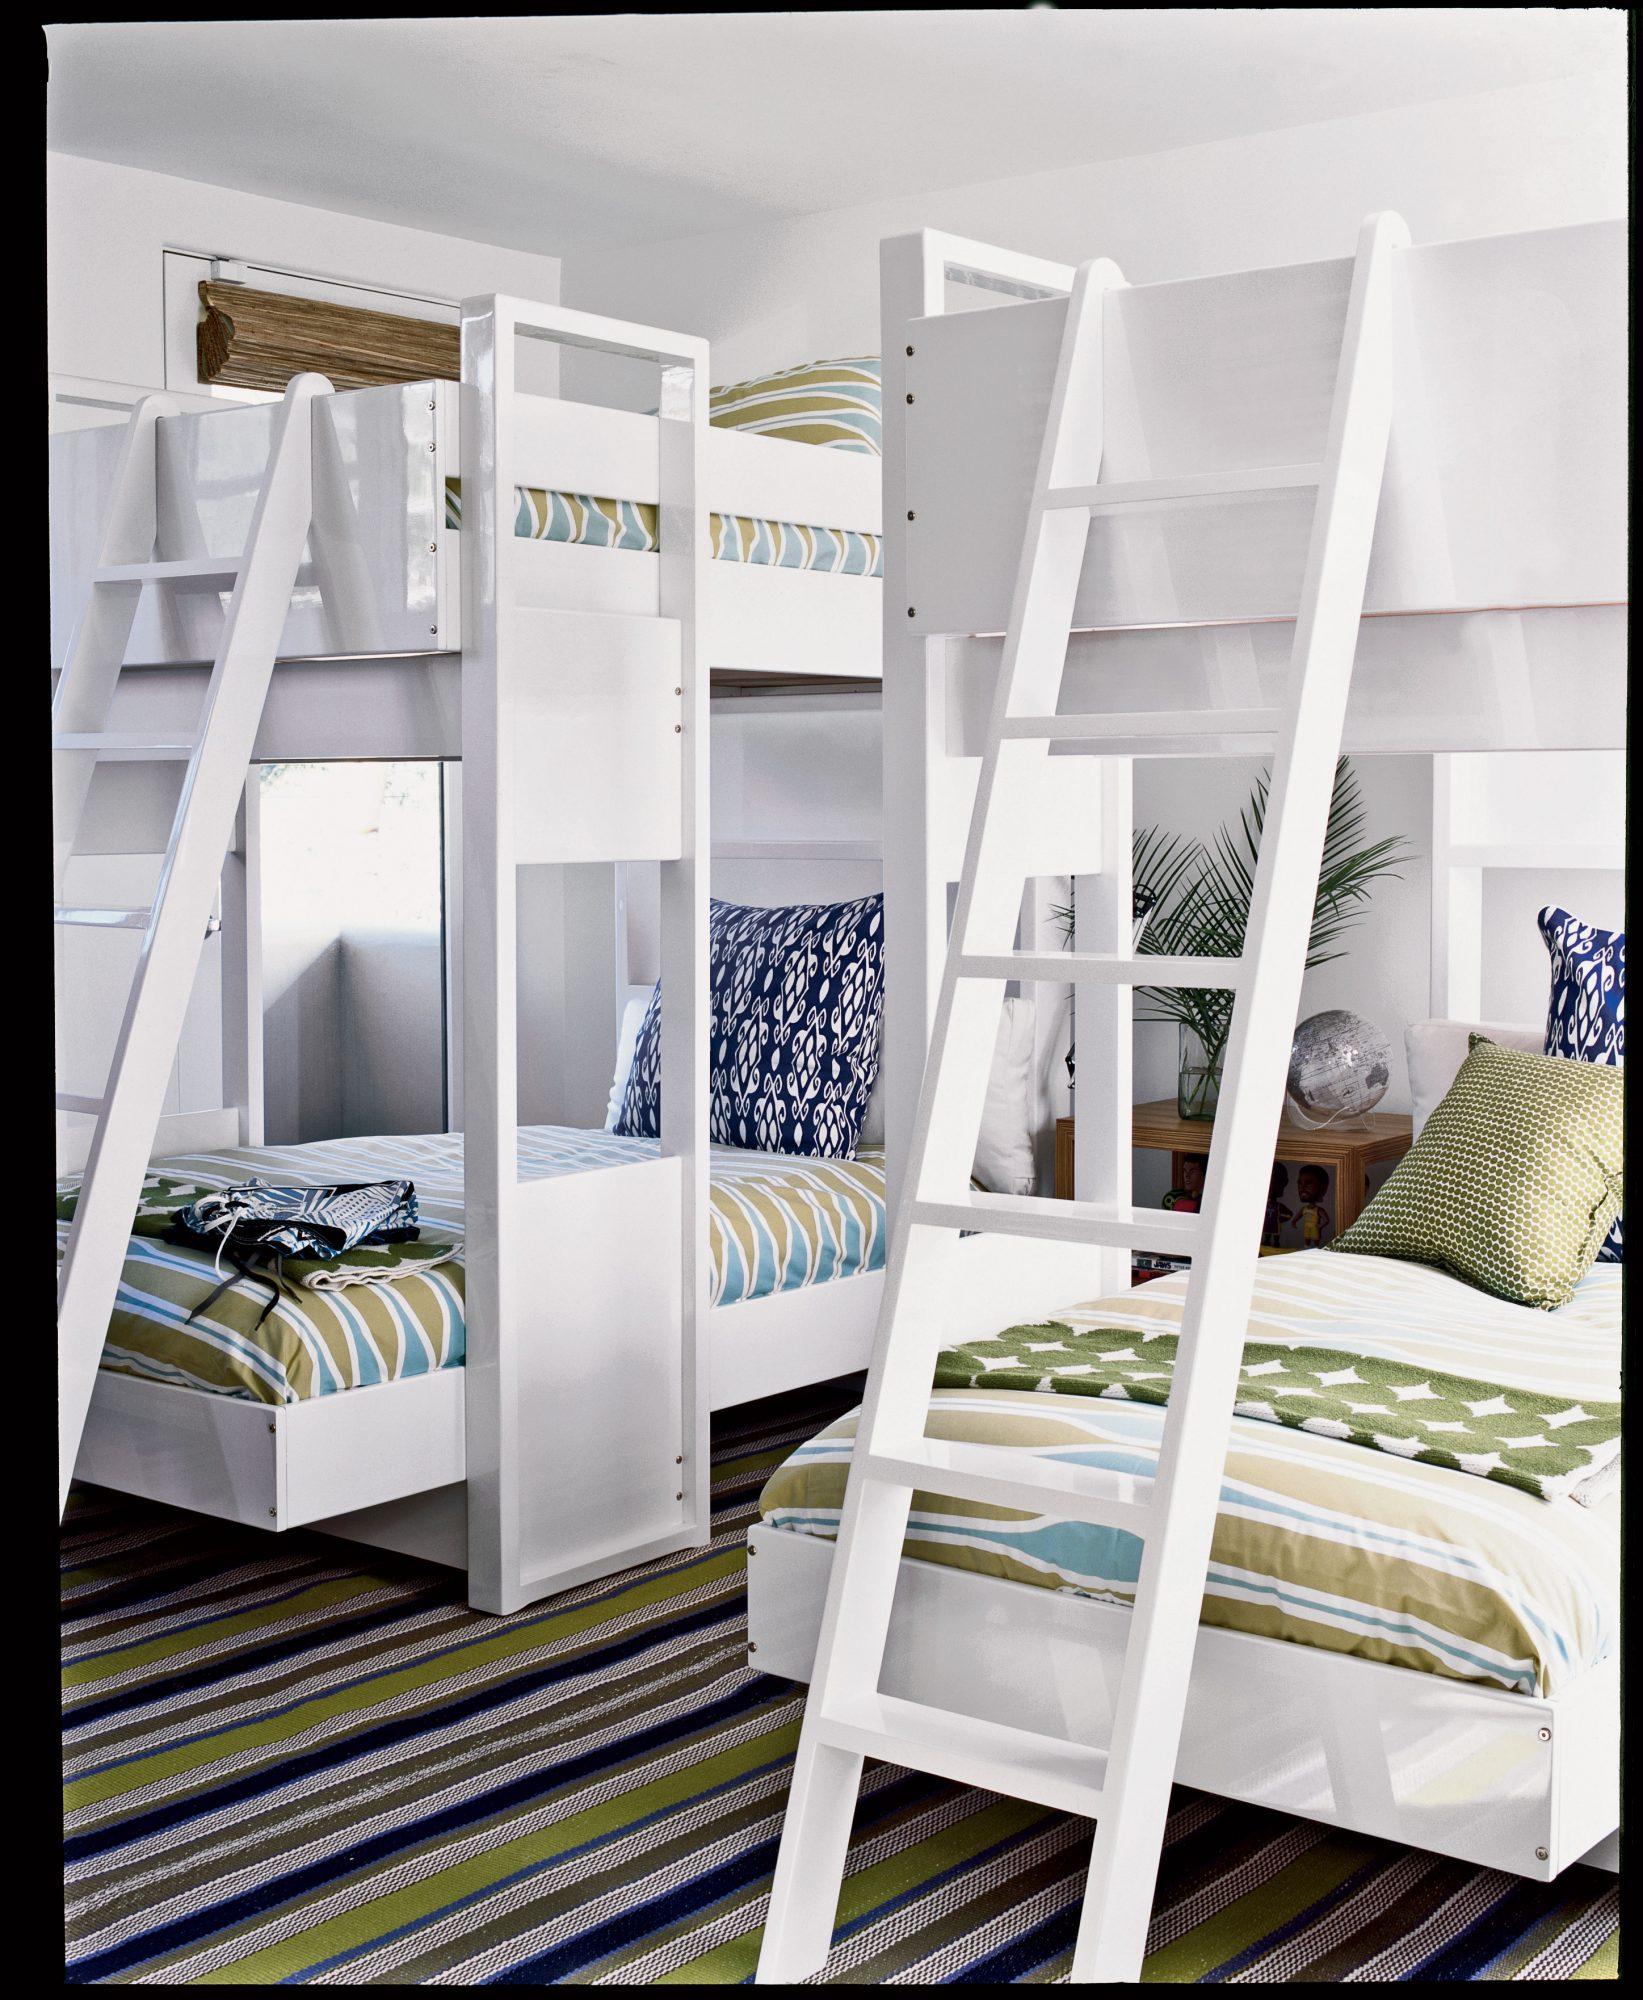 Compromise with the kids by creating an upscale bunkroom with the sophisticated colors and prints you love combined with the fun beds they'll love. This modern update on the classic bunk bed style is more sculptural, yet sturdy and compact with plenty of room for sleepovers.